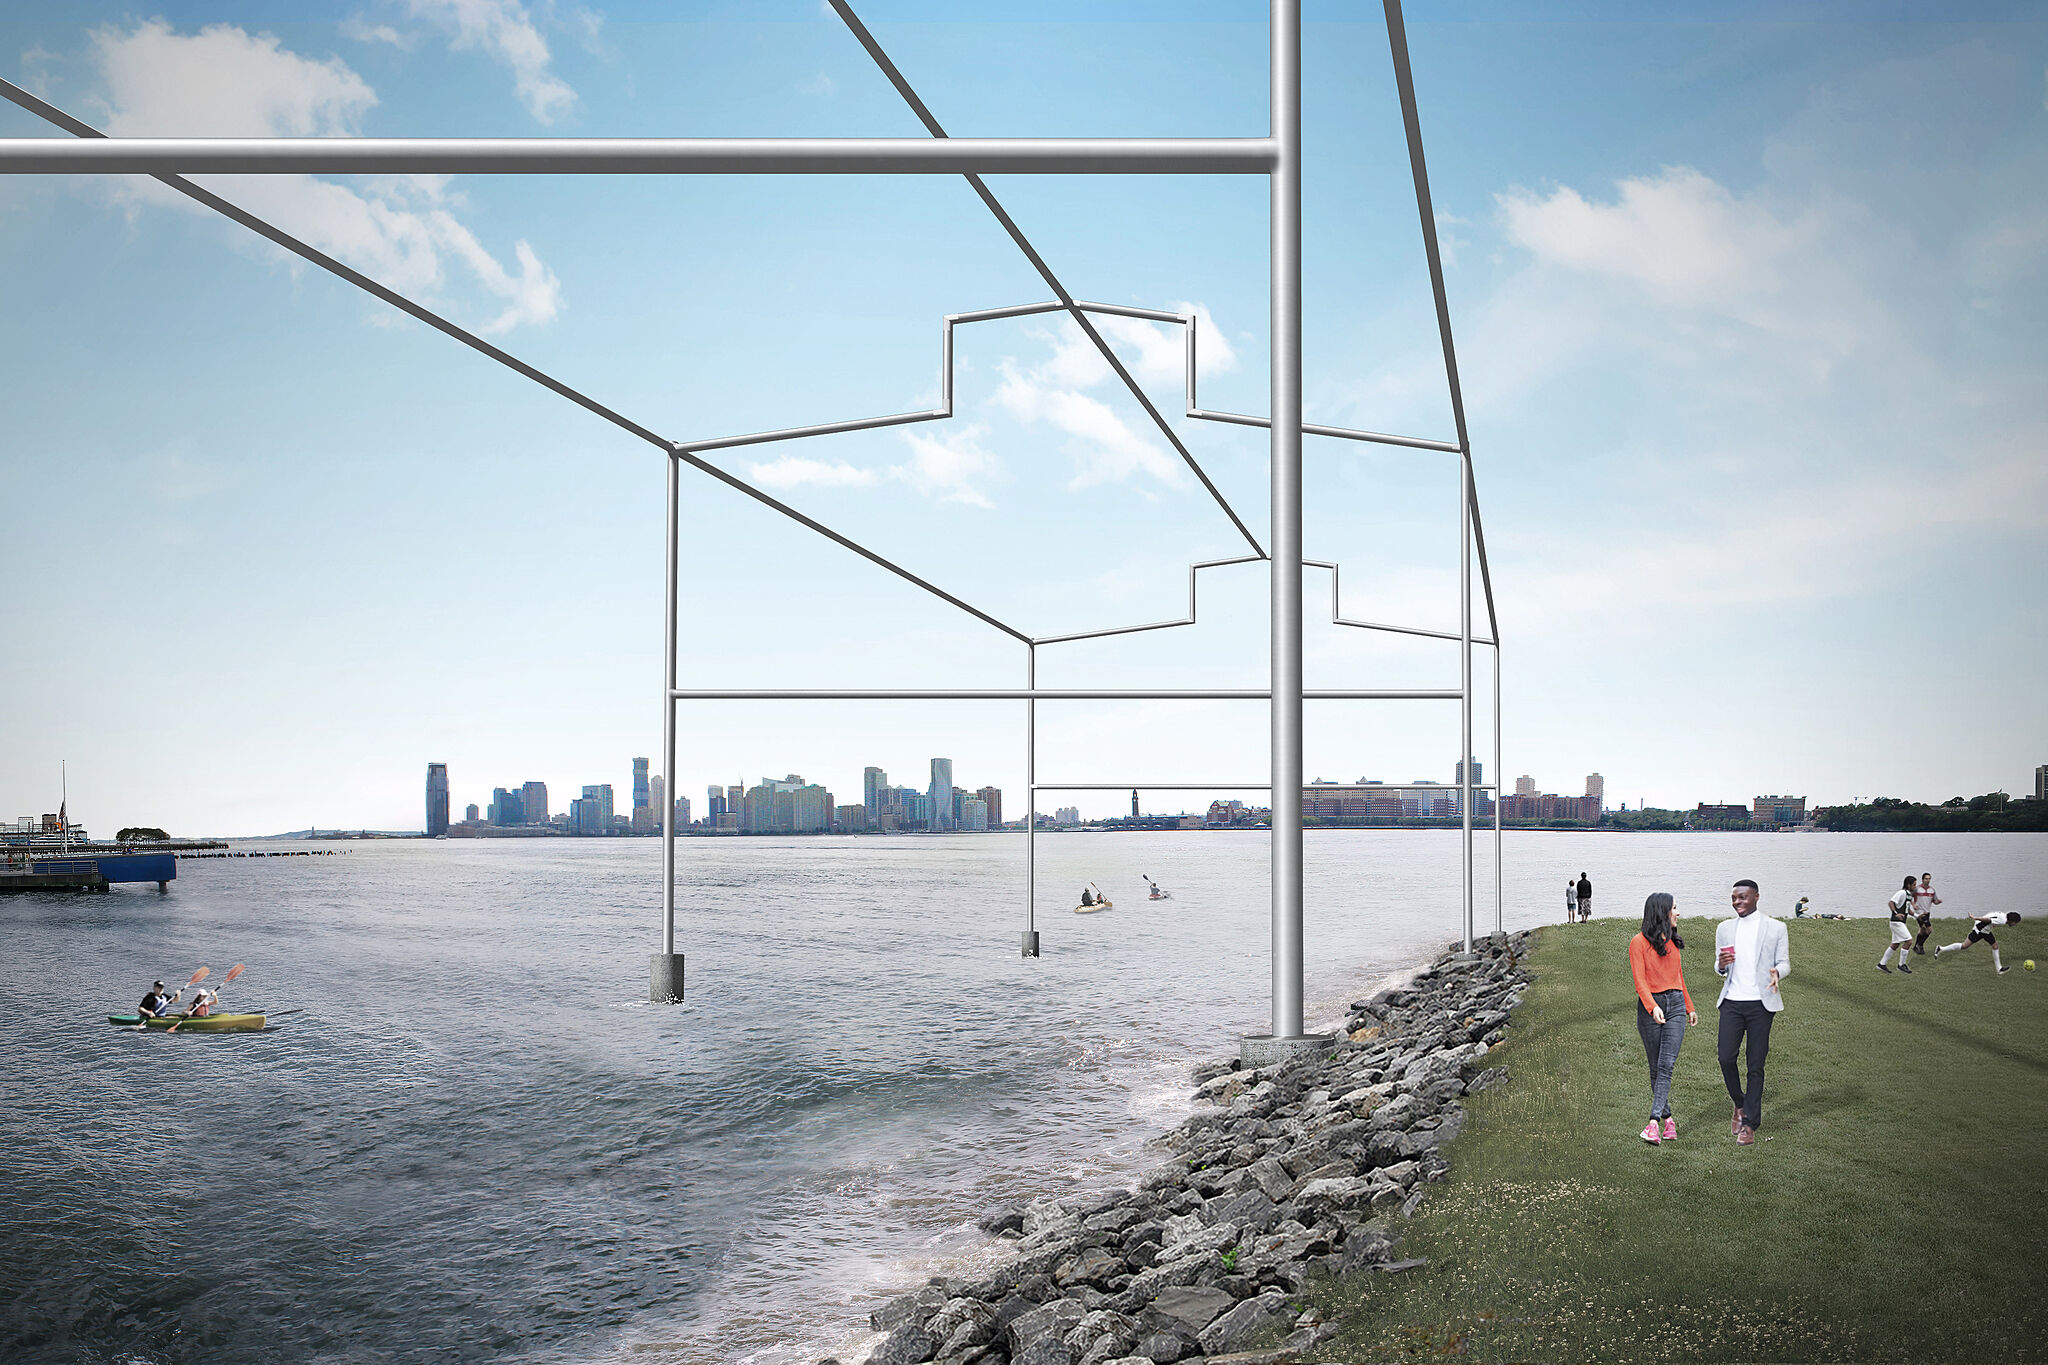 Rendering of a sculpture by David Hammons, resembling the frame of a shed rising from the Hudson River